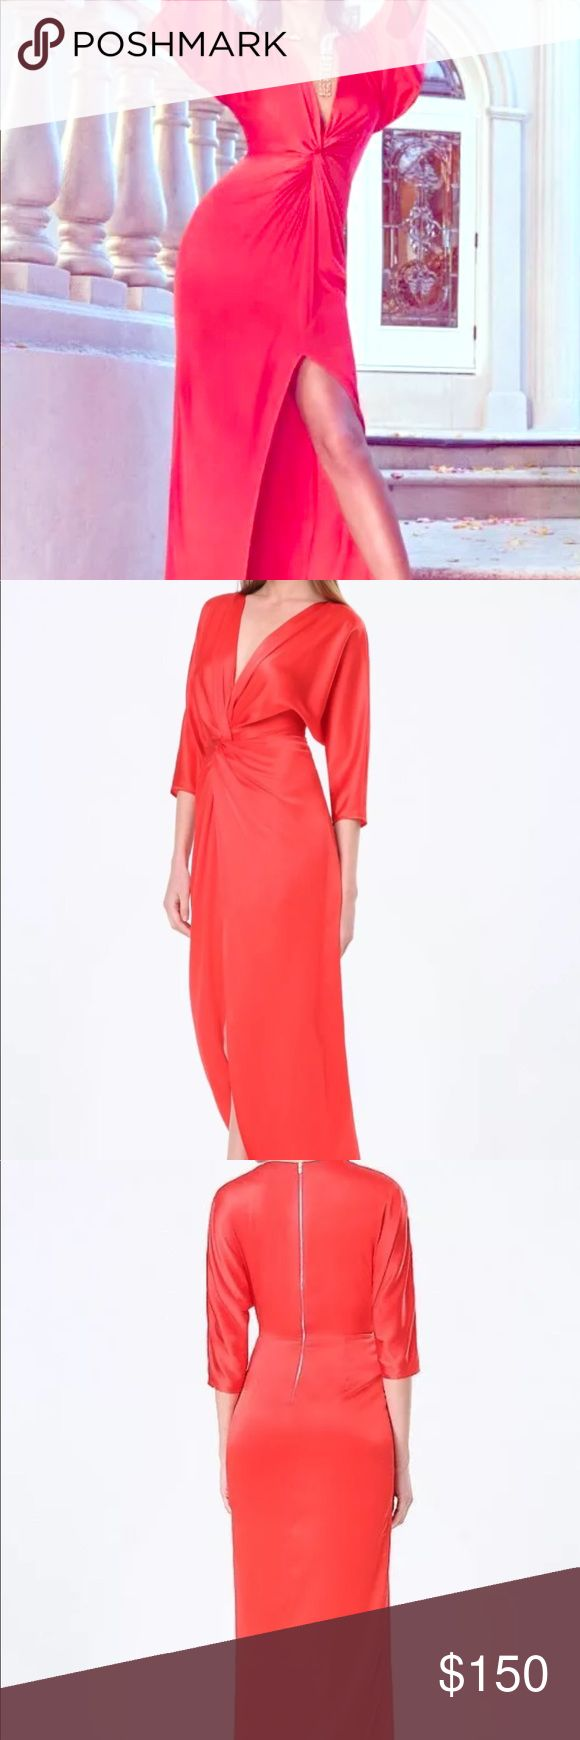 bebe sexy high slit red silk dress - size 2 This is a NWOT gorgeous bebe red silk dress with plunging deep V neckline and high middle Slit in the front. This dress is absolutely stunning on and hugs your curves like no other. It is a perfect dress for any formal or black tie event and is definitely a wow factor. bebe Dresses Maxi